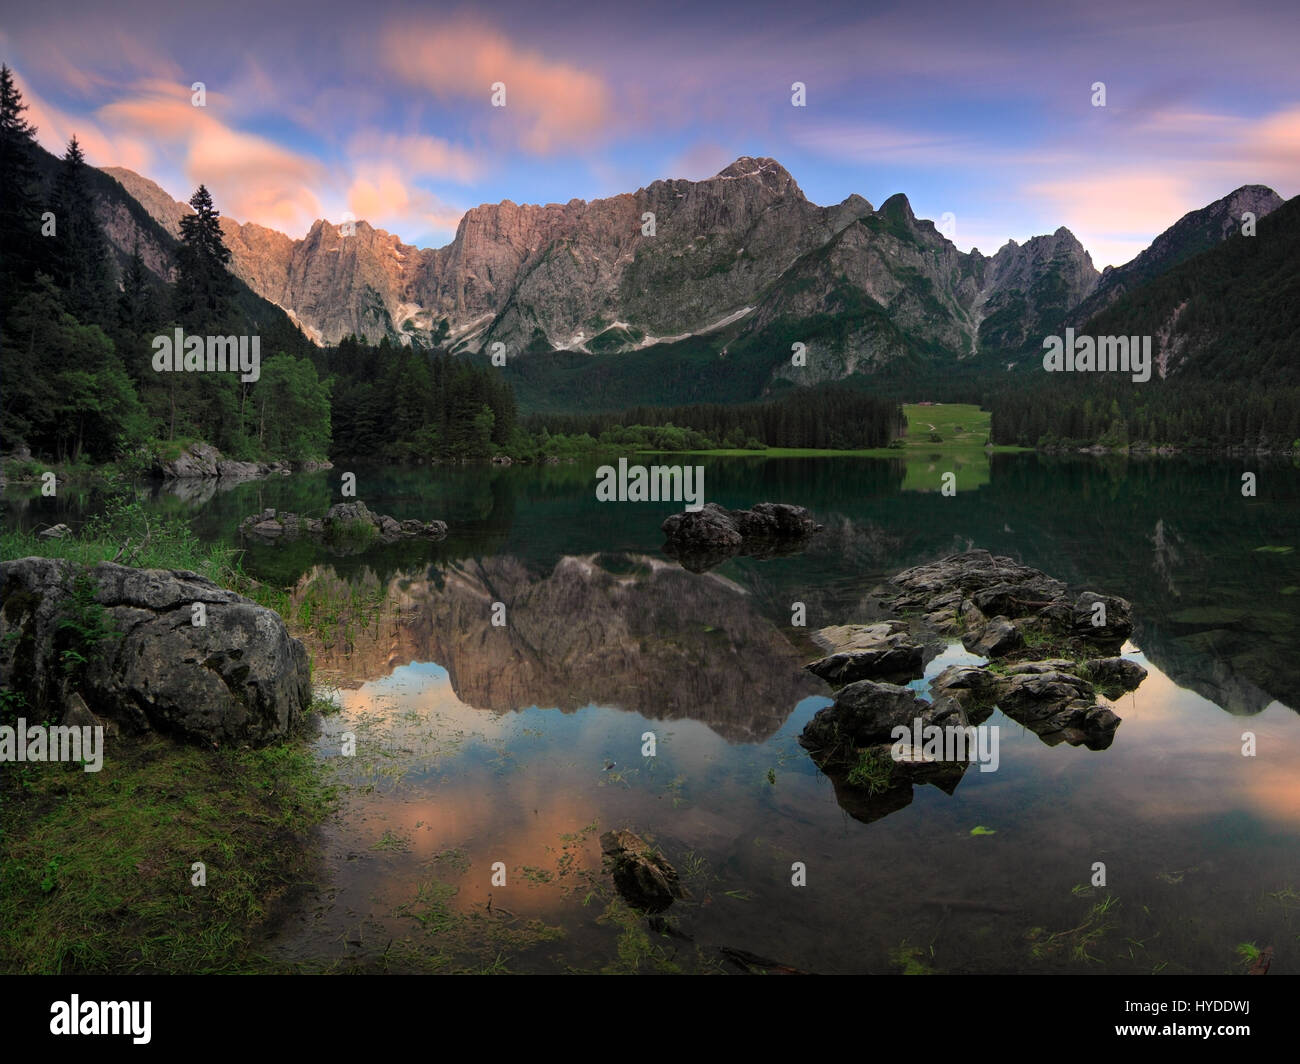 An after sunset view of the upper lake of Fusine Valromana next to Tarvisio in Friuli, Italy, with Mount Mangart - Stock Image